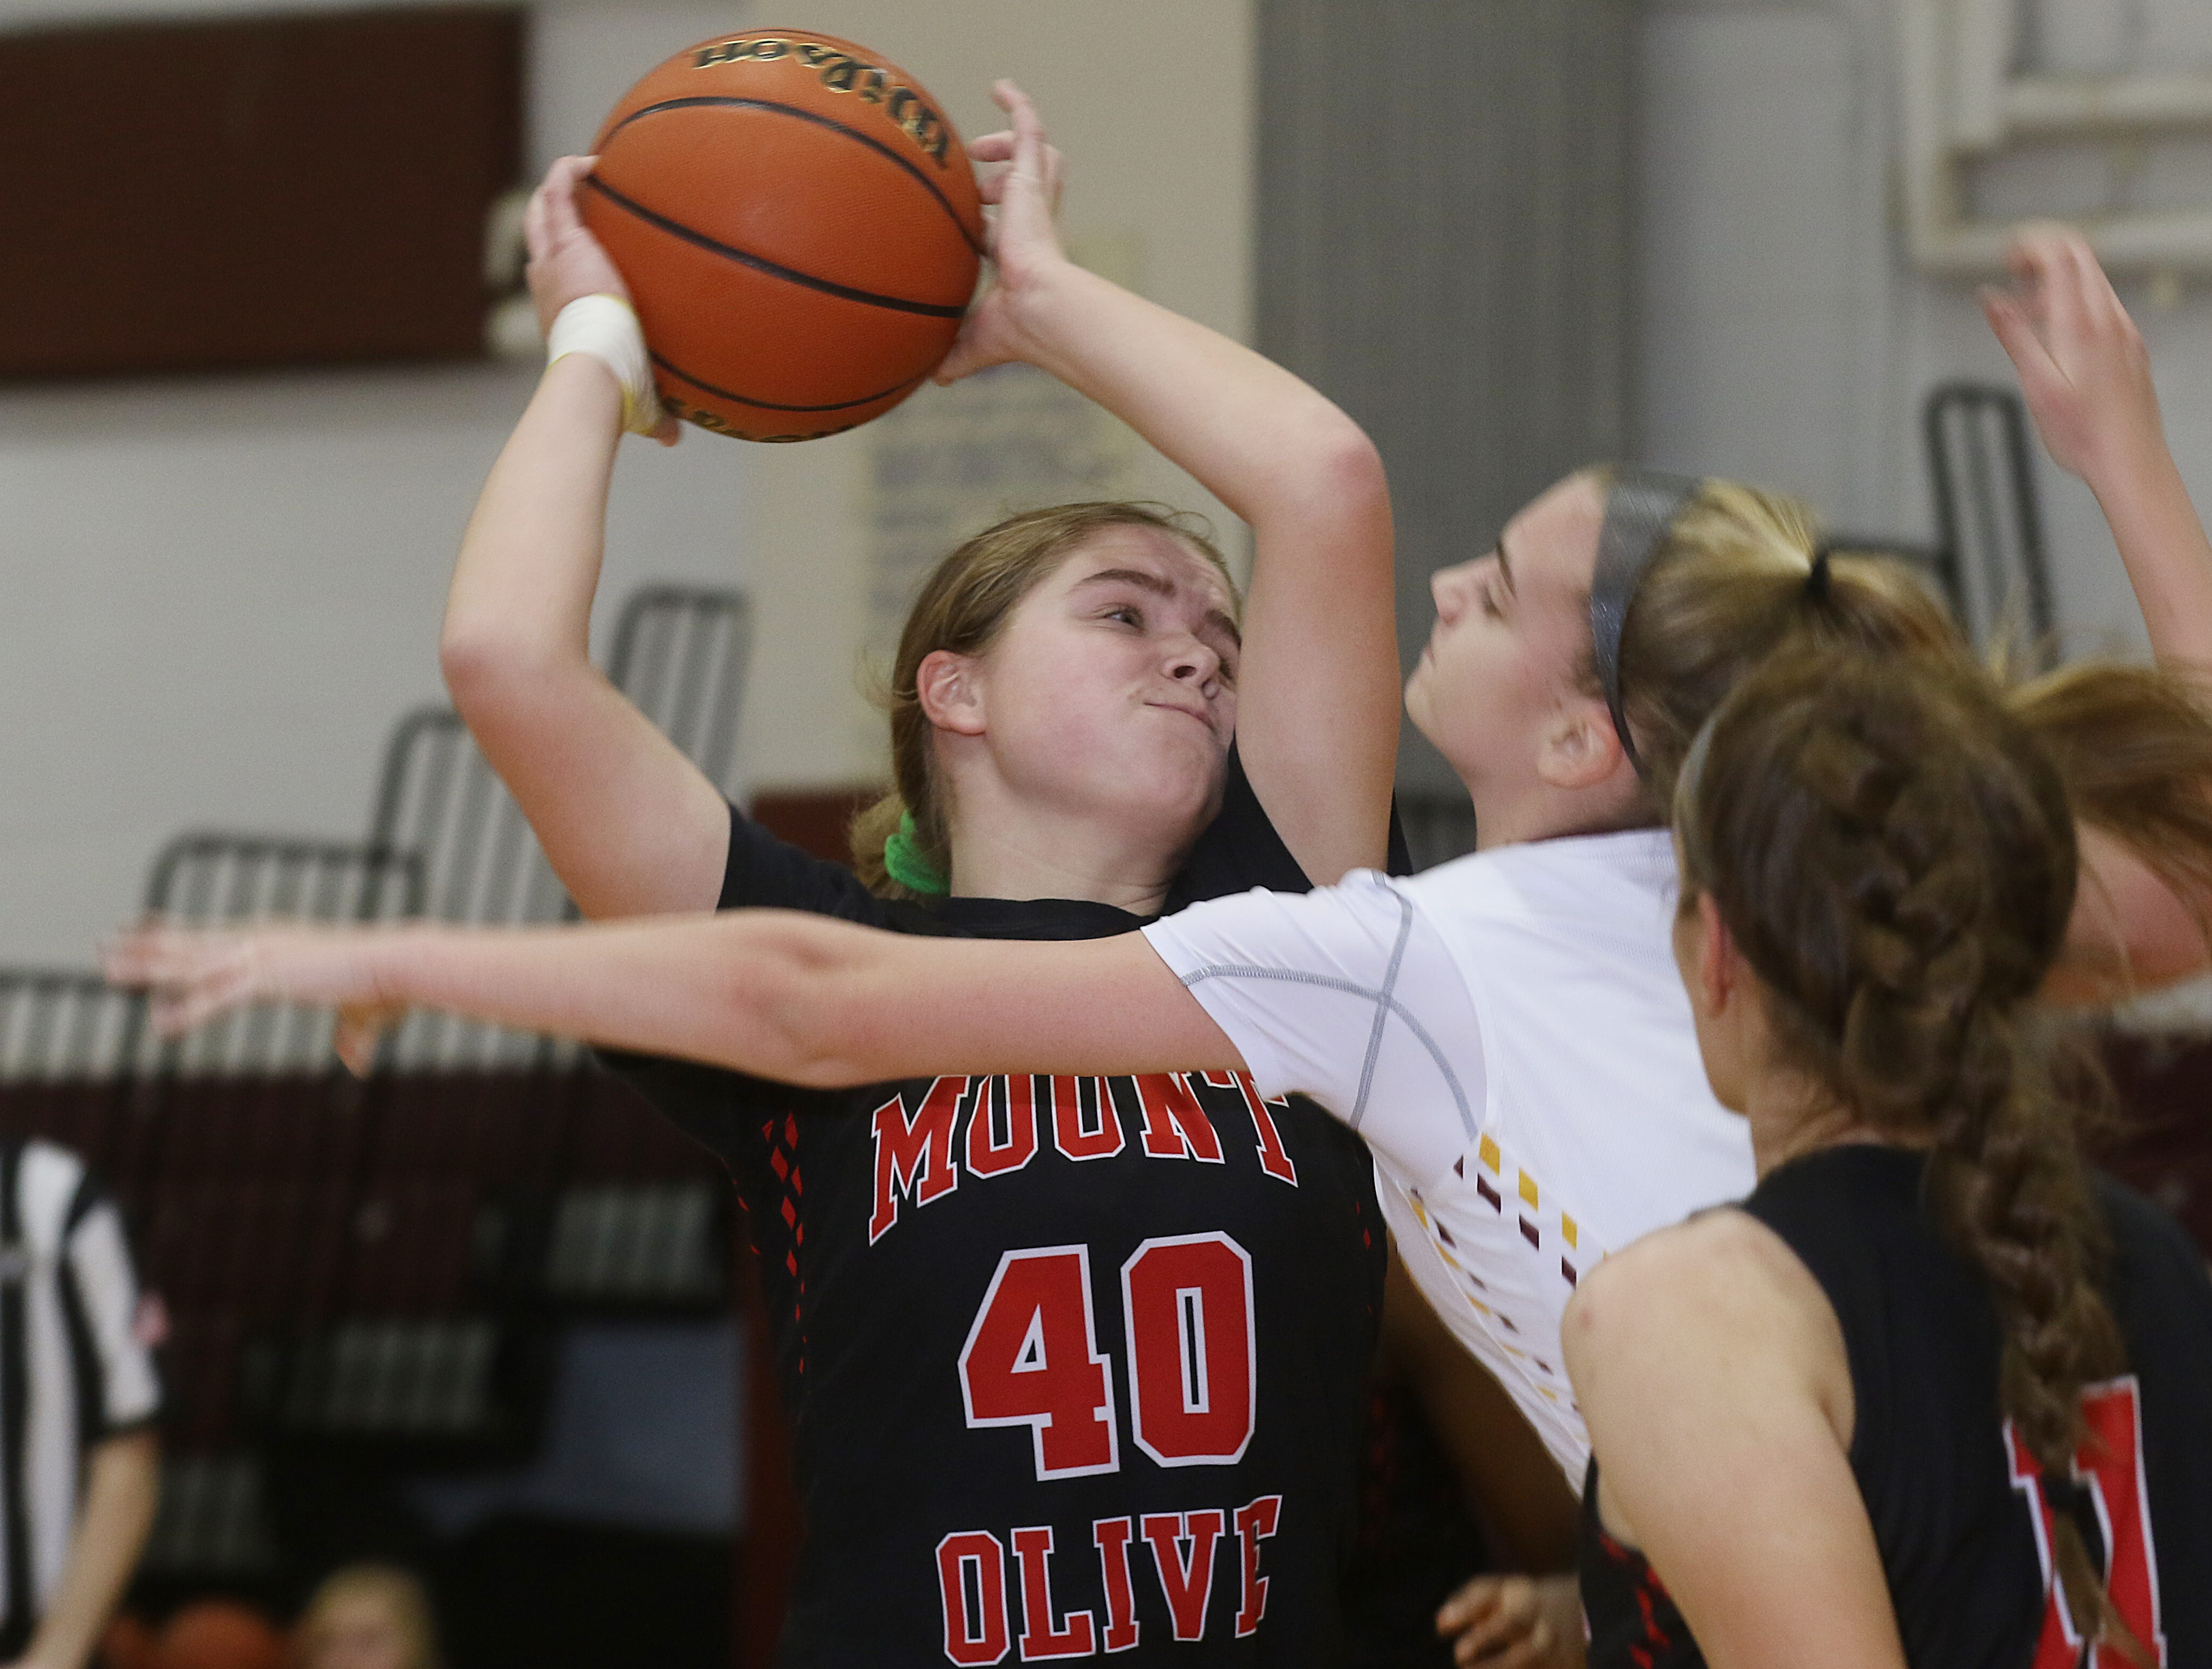 Ainsley Williams of Mount Olive tries to get the shot over Mikaela Timmermans of Madison in the first half.